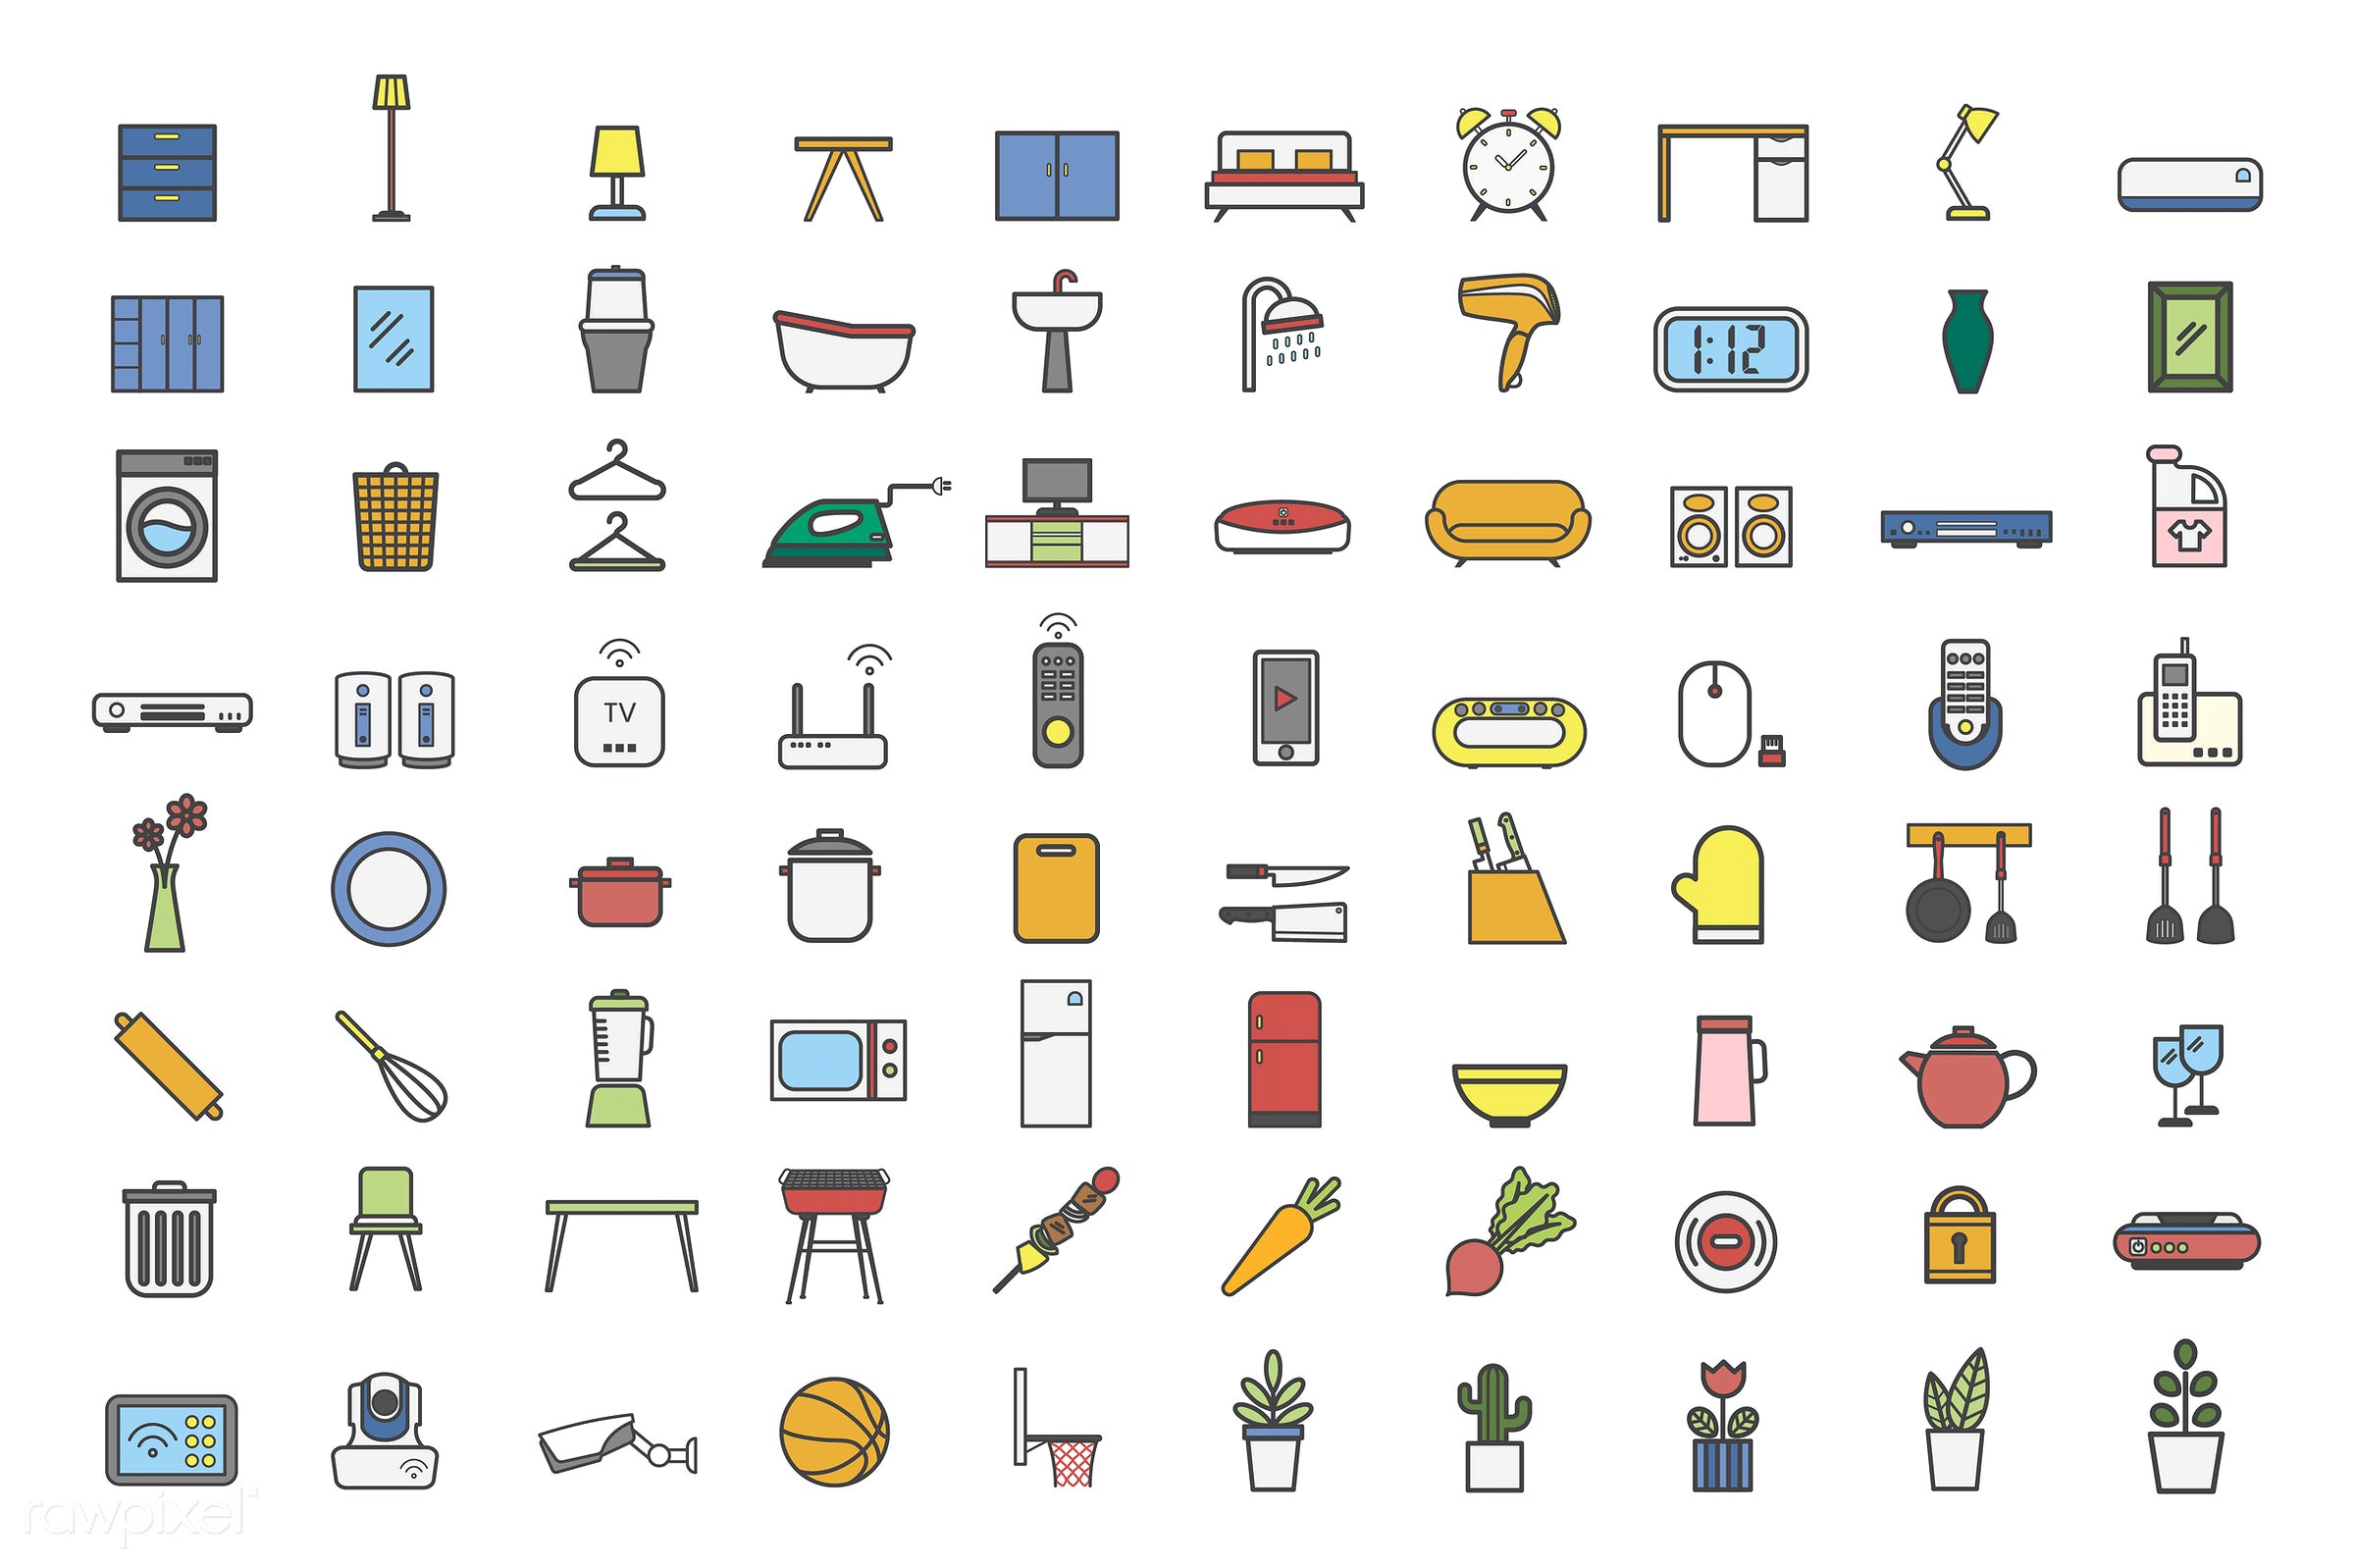 Collection of household item vectors - home, house, household, living, abode, adults, comfort, cozy, dwelling, homely, pad,...